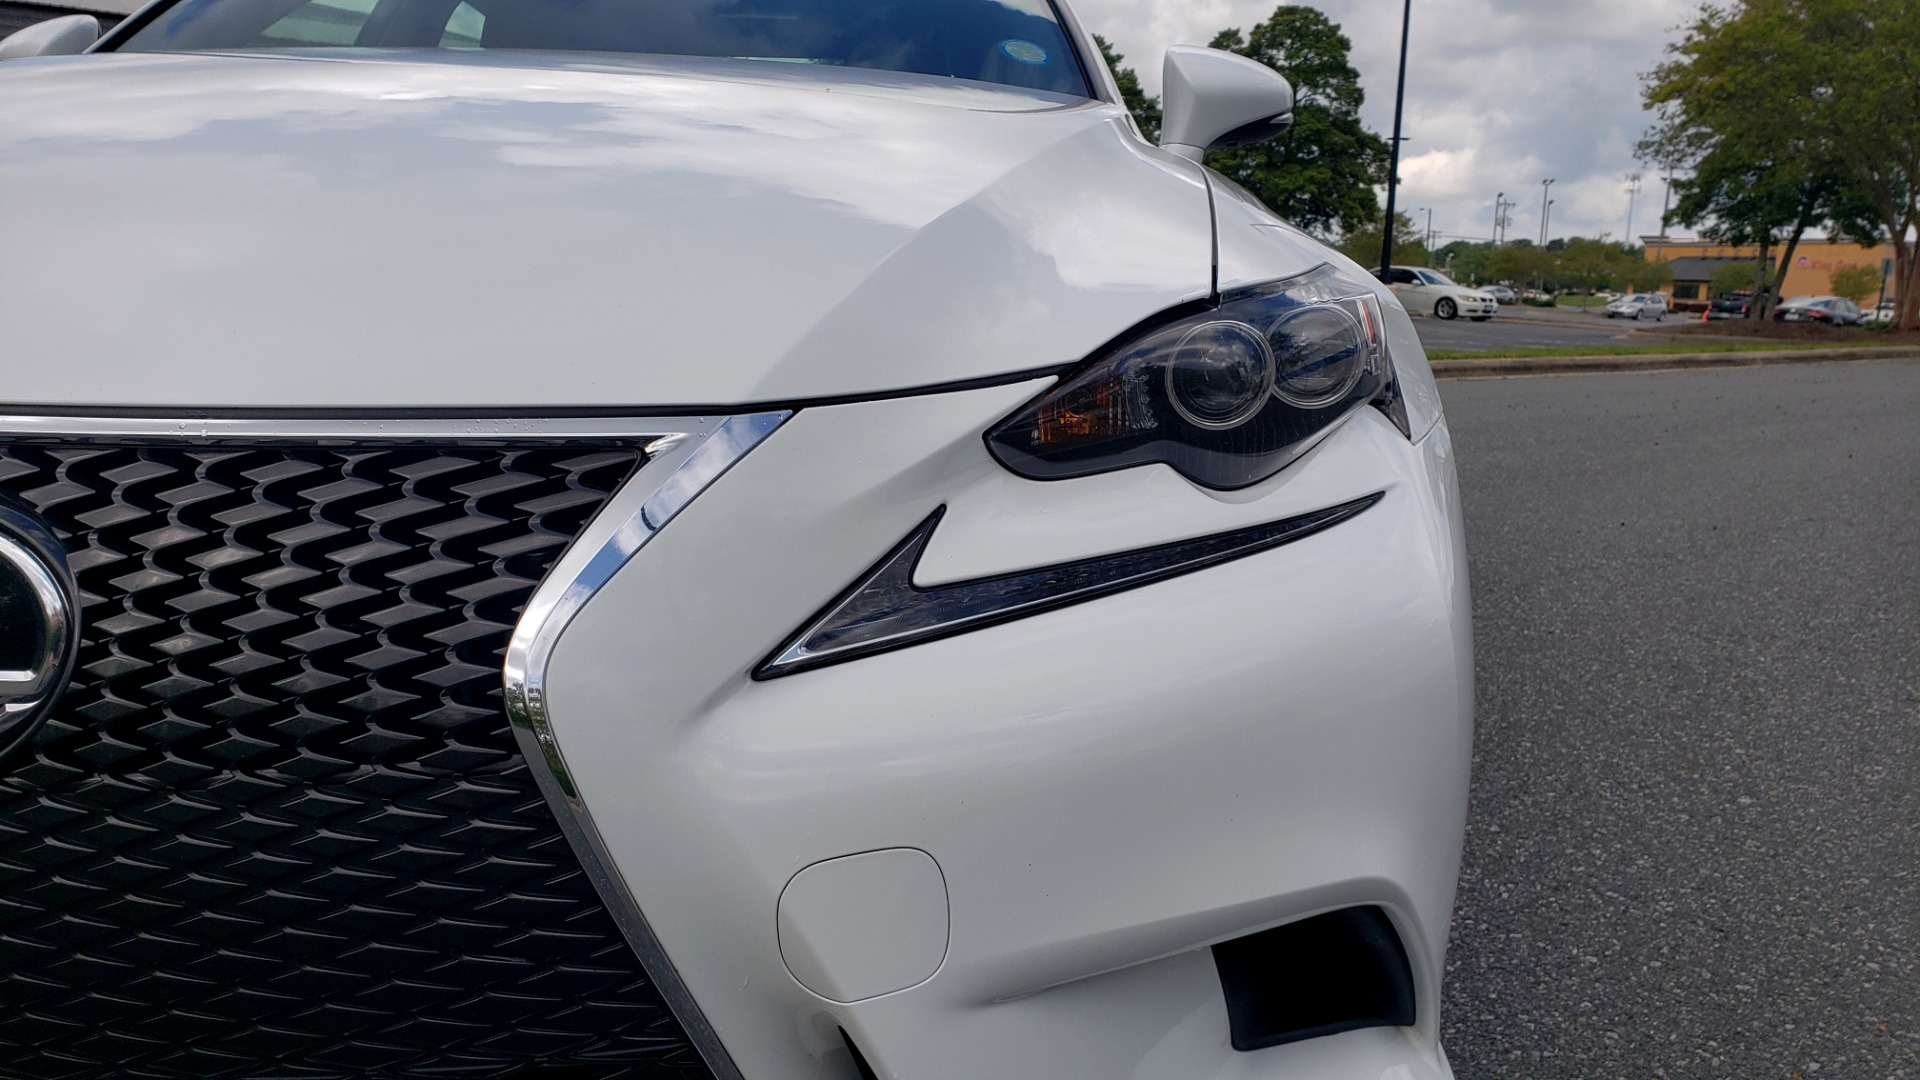 Used 2016 Lexus IS 350 F-SPORT / NAV / BSM / SUNROOF / REARVIEW / VENT SEATS for sale Sold at Formula Imports in Charlotte NC 28227 19